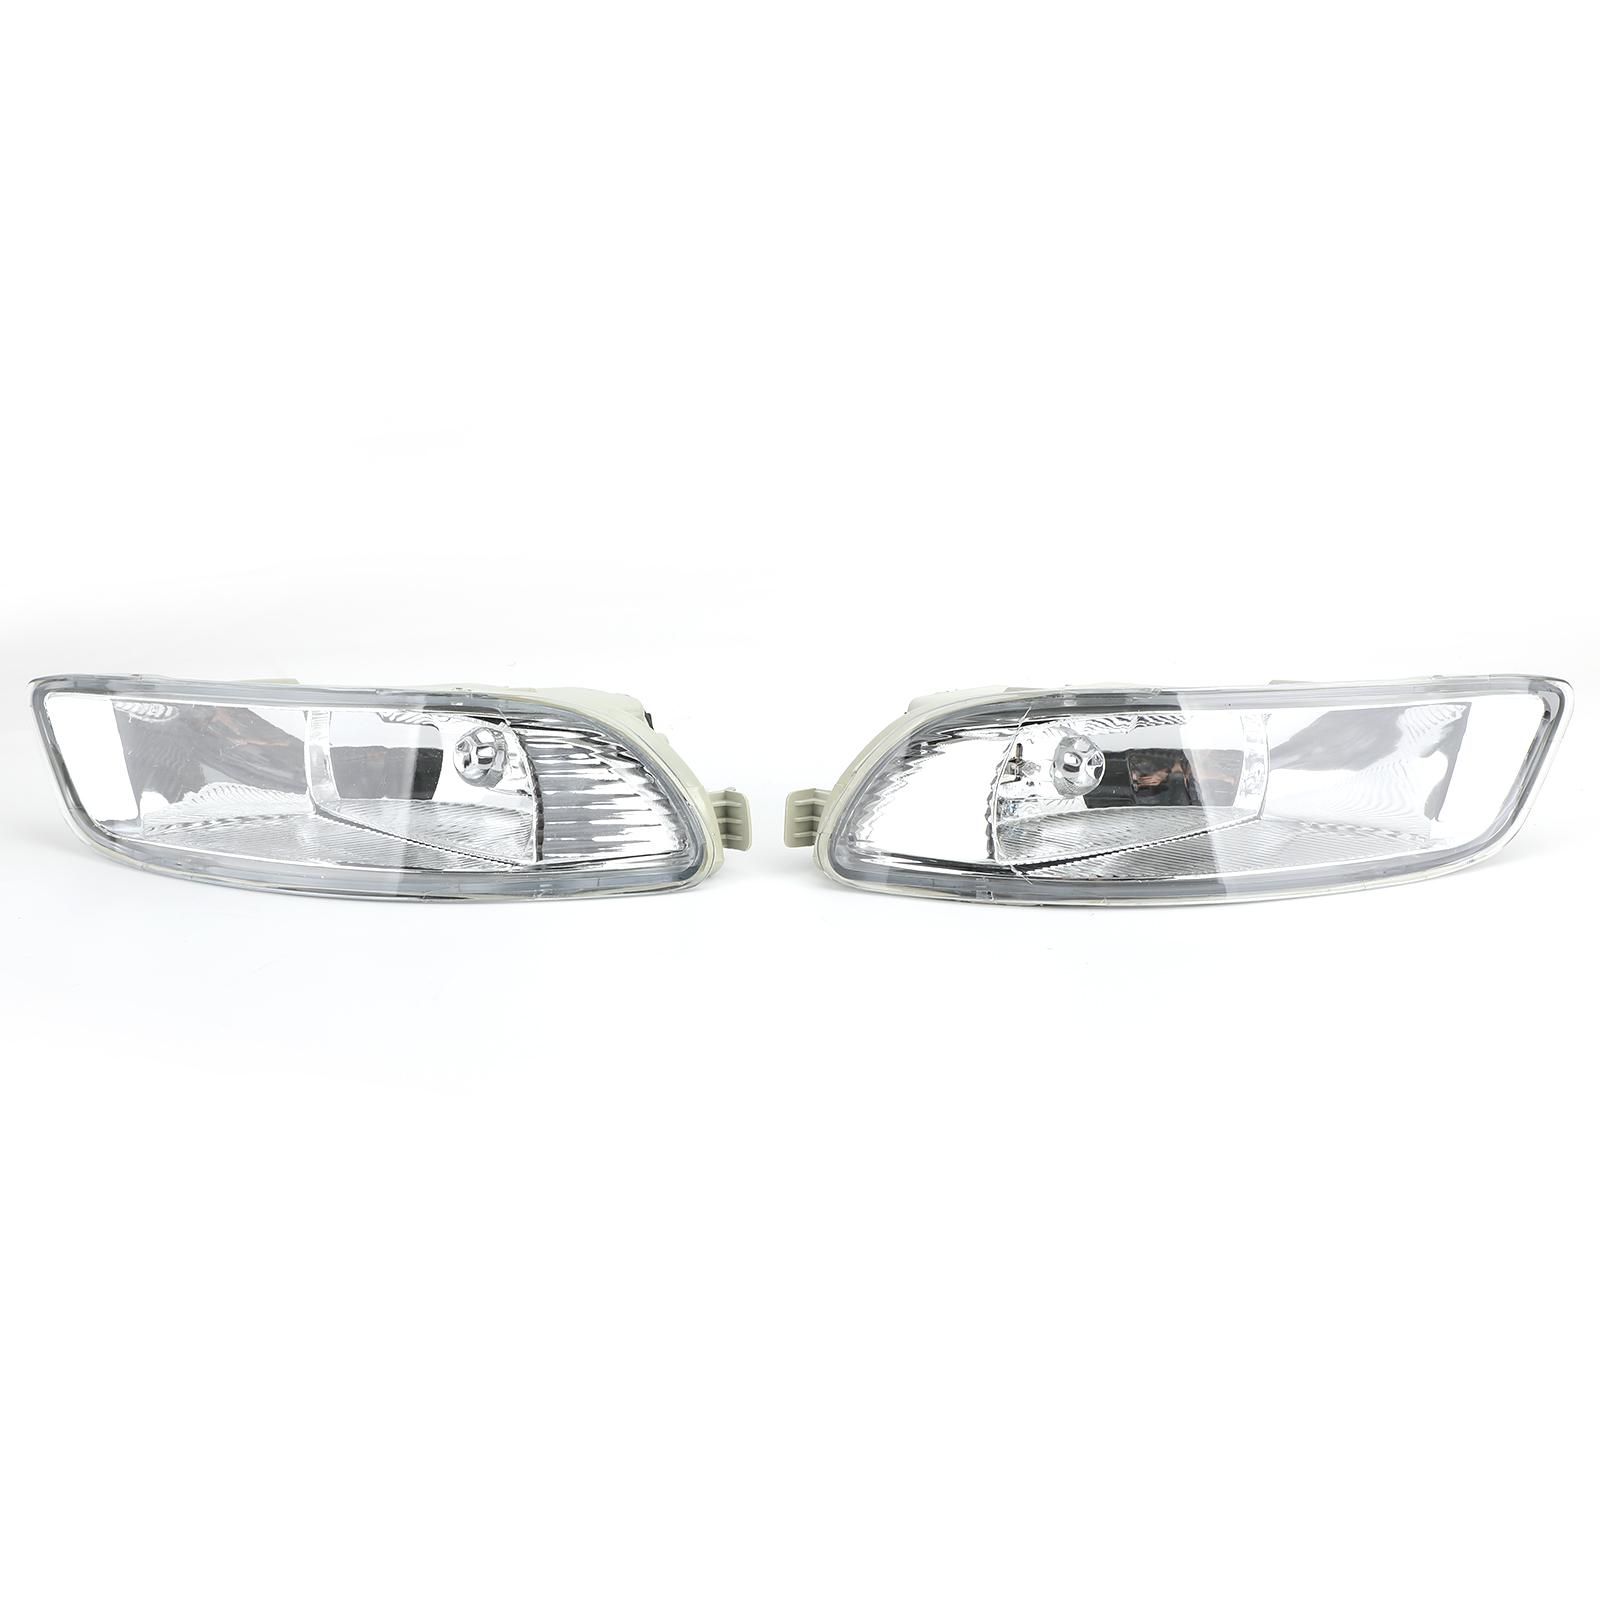 Areyourshop 2X Front Bumper Lamp Clear Fog Light For 2005-2008 To-yo-ta Corolla Camry Solara